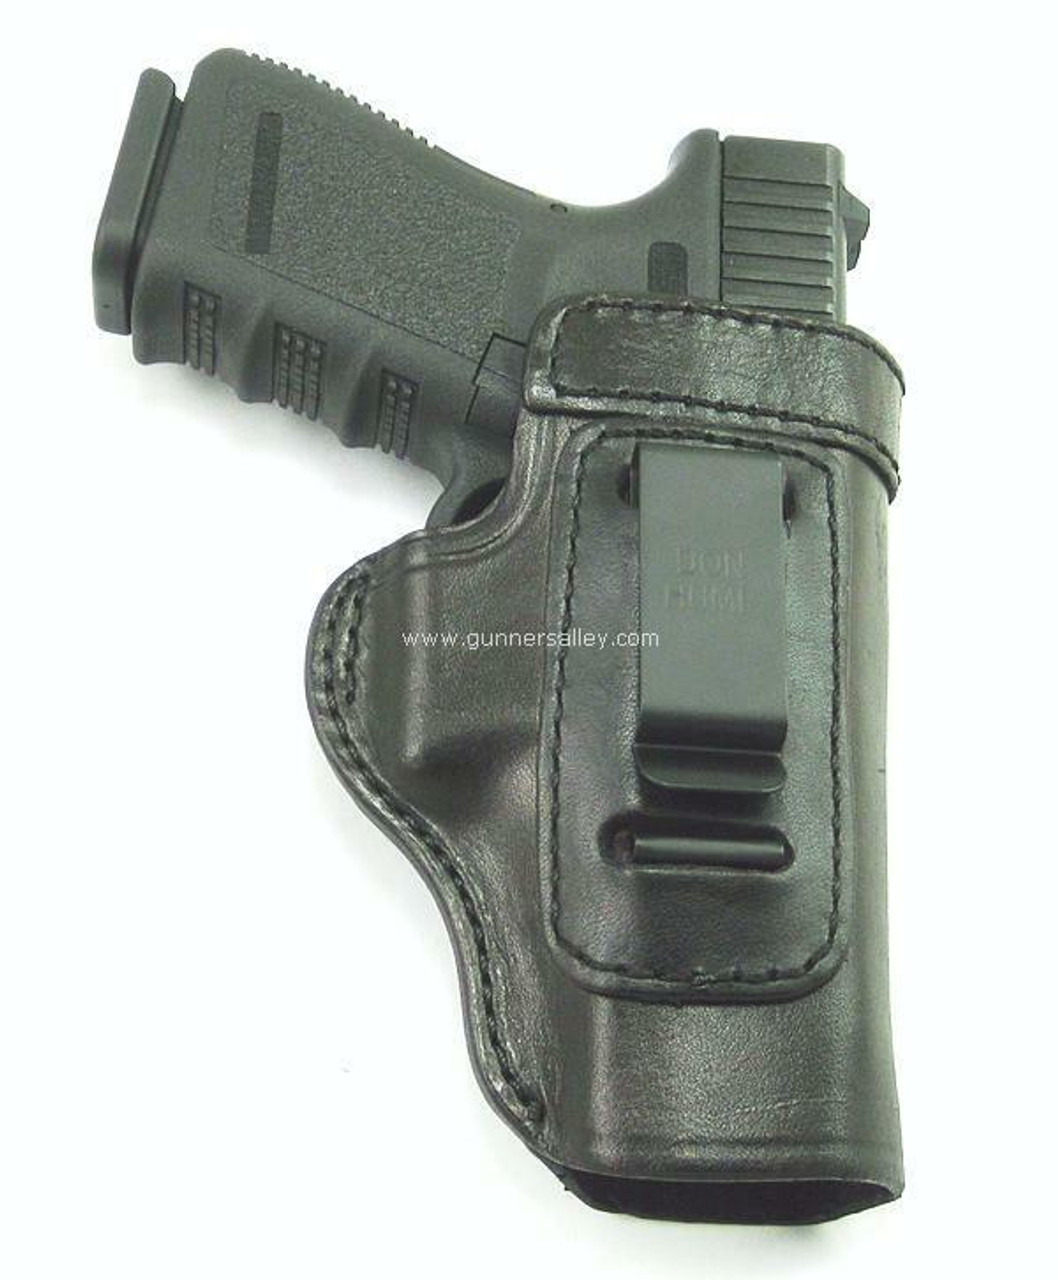 Black - Front View - Shown with a Glock 19 for Demonstration Purposes